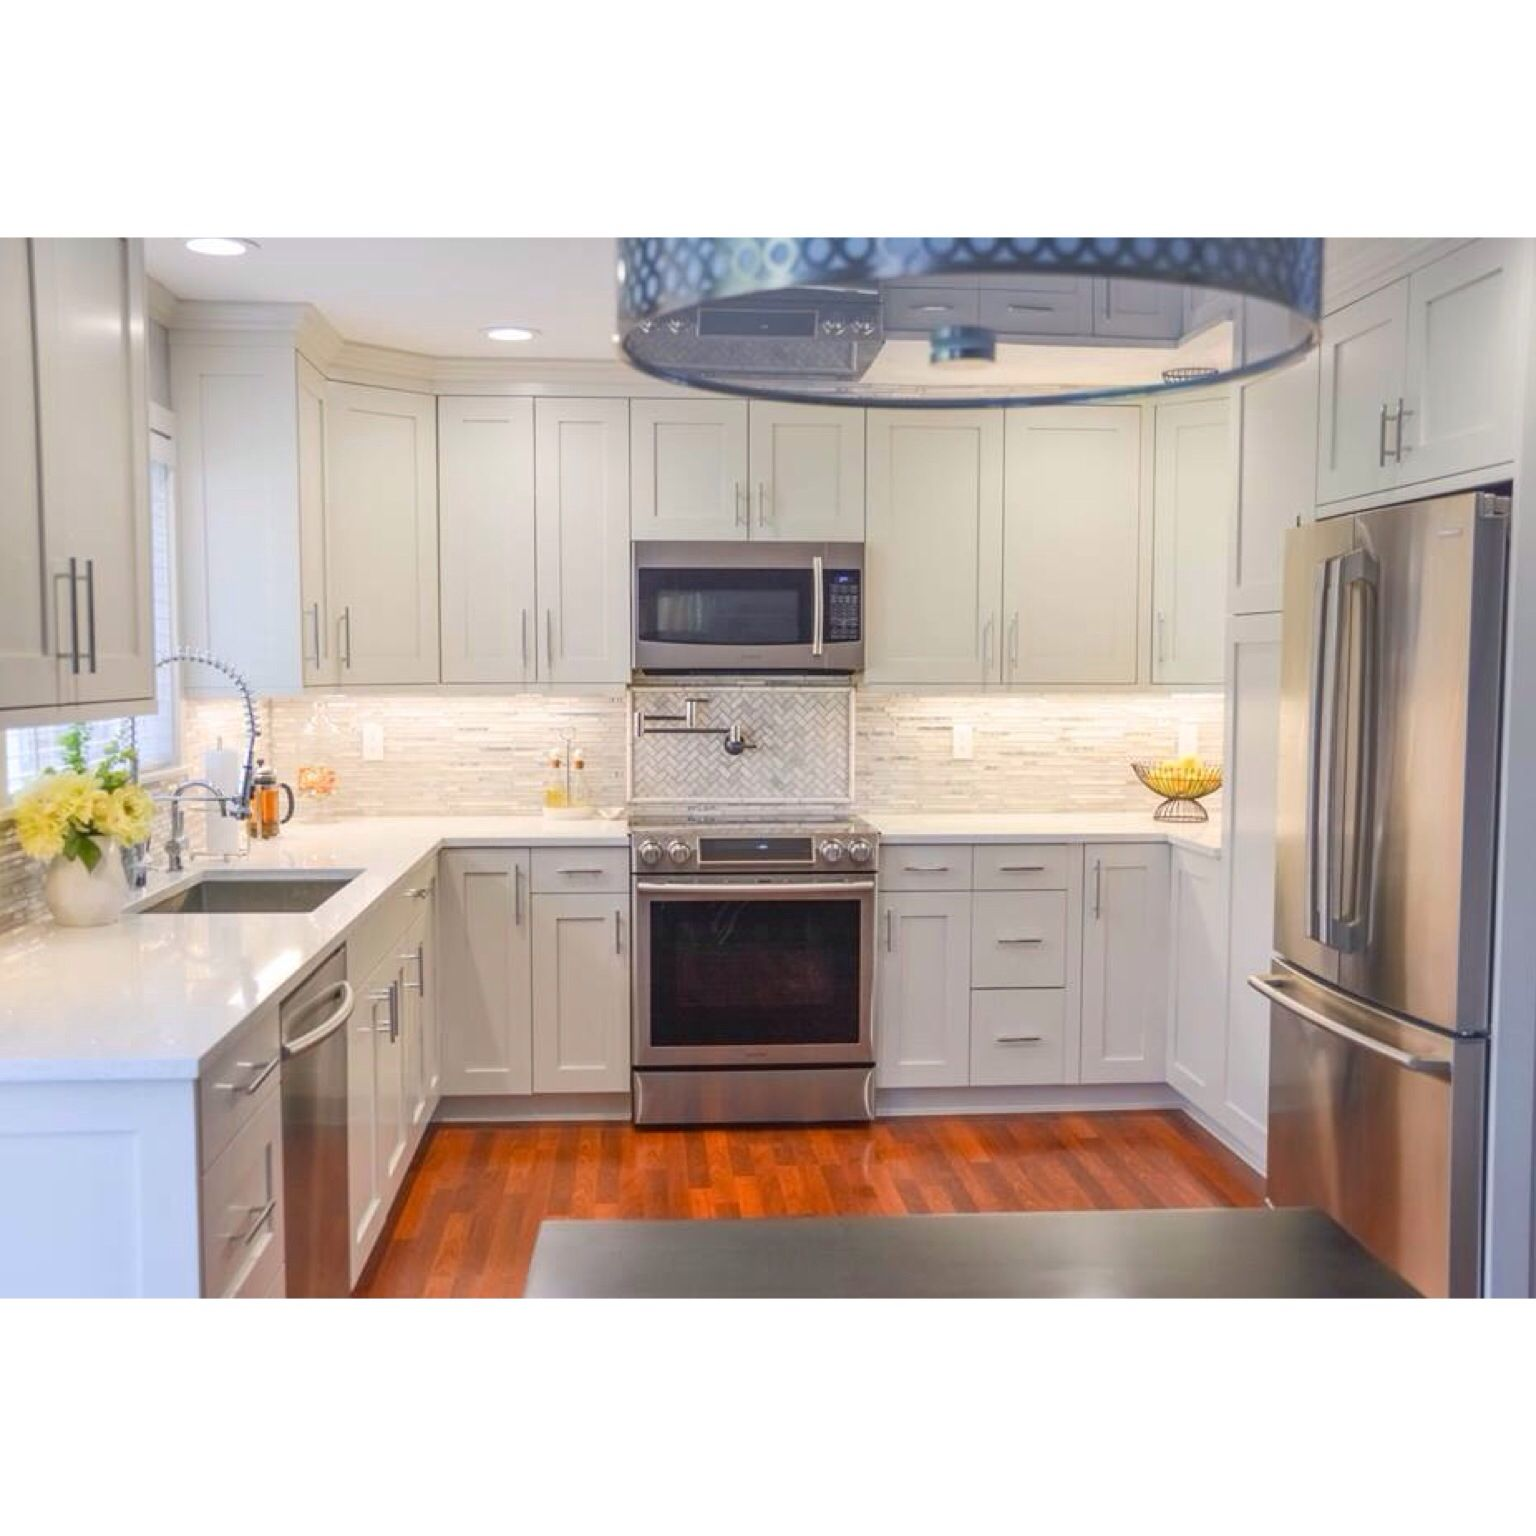 Oc 23 Classic Gray Benjamin Moore Whites Kitchen Cabinets Moore Kitchen Benjamin Moore Kitchen Kitchen Cabinets